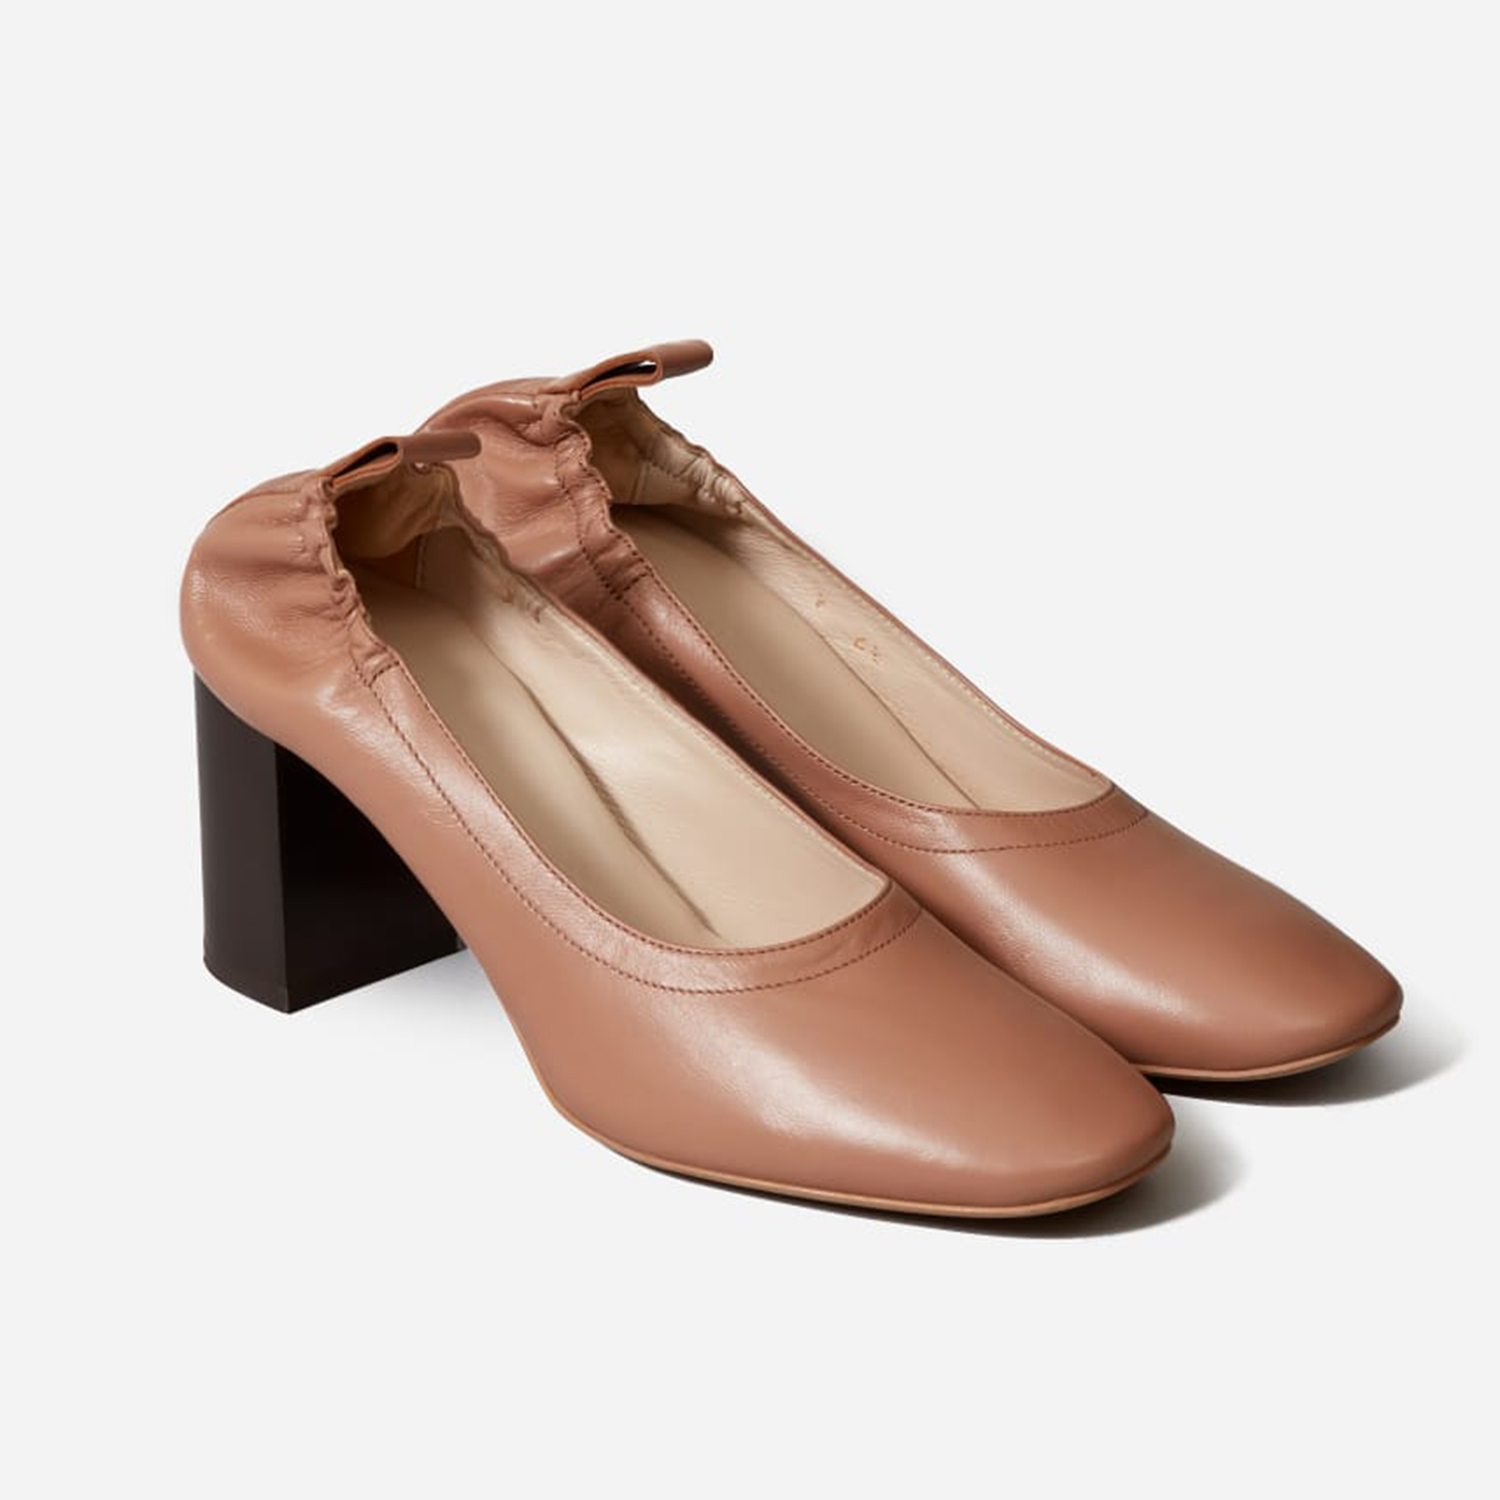 Everlane The Day High Heel Pecan Stack